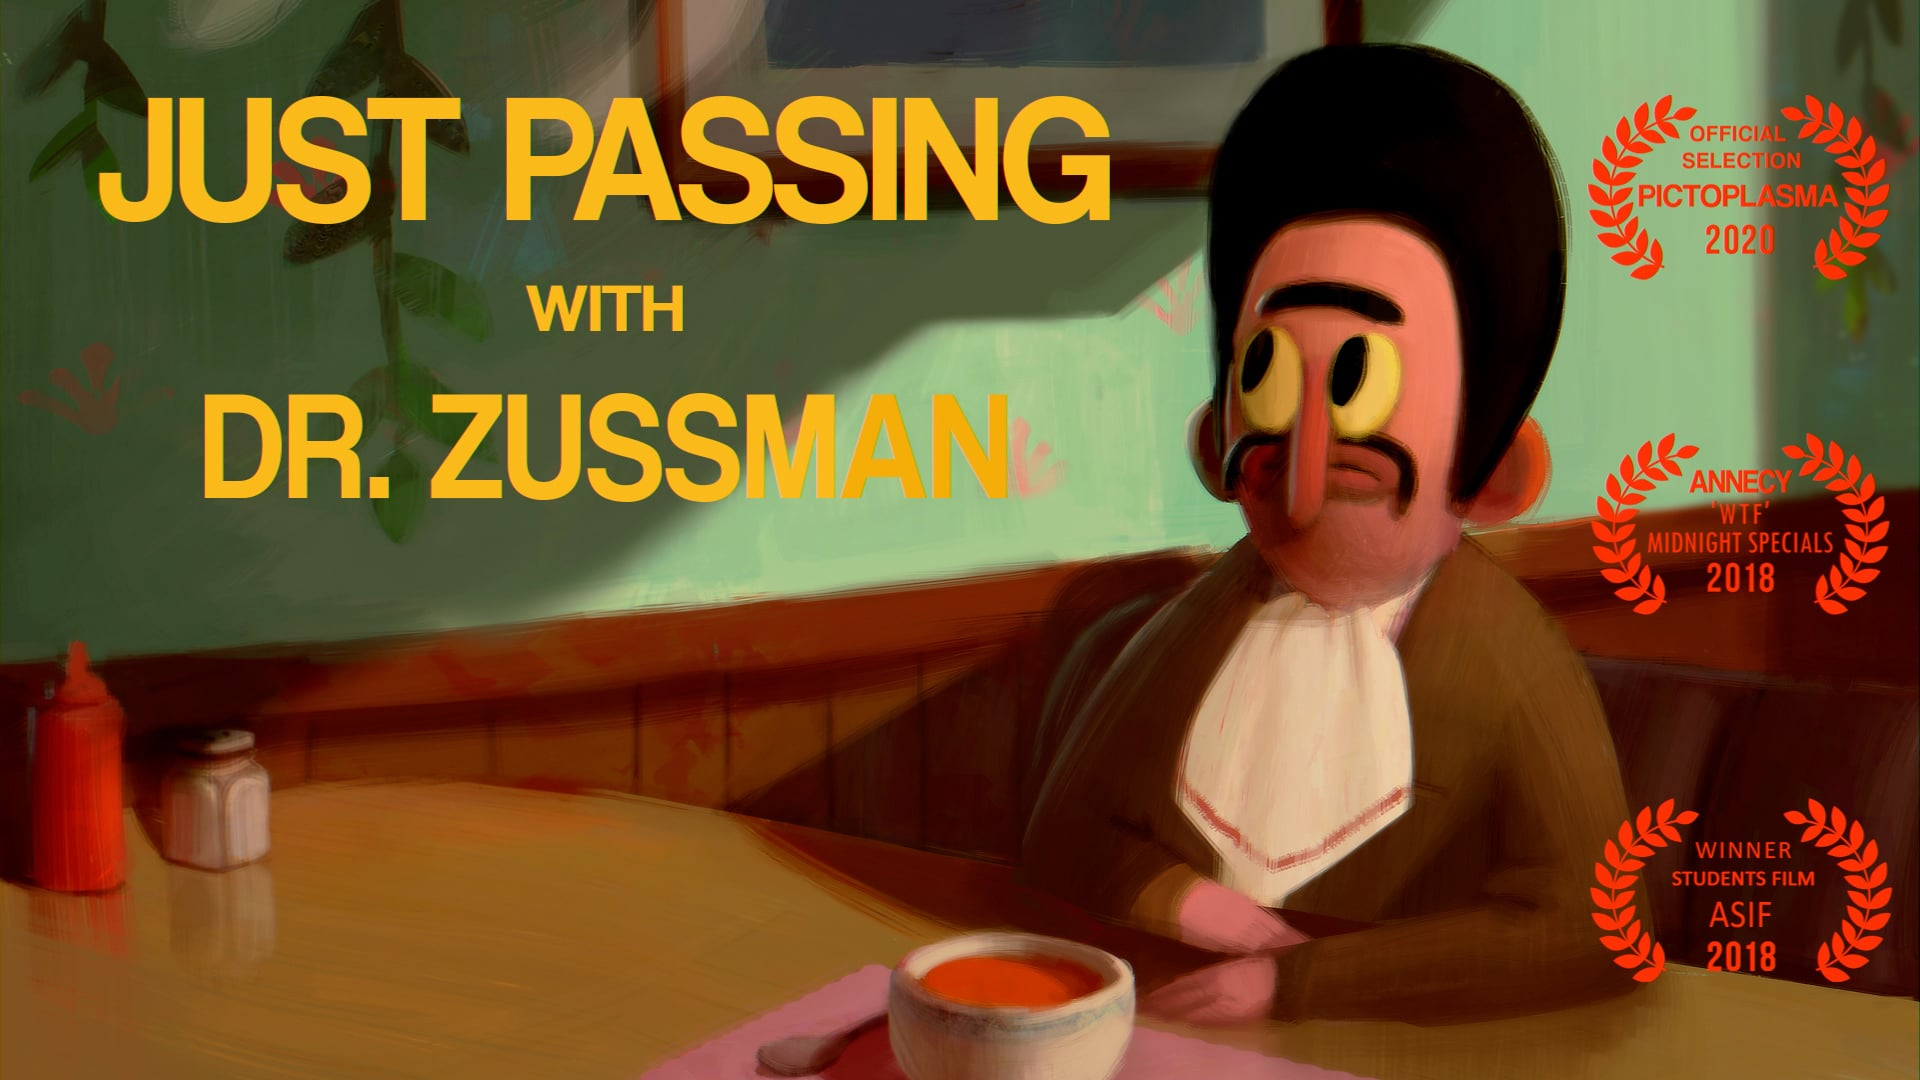 Just Passing with Dr. Zussman